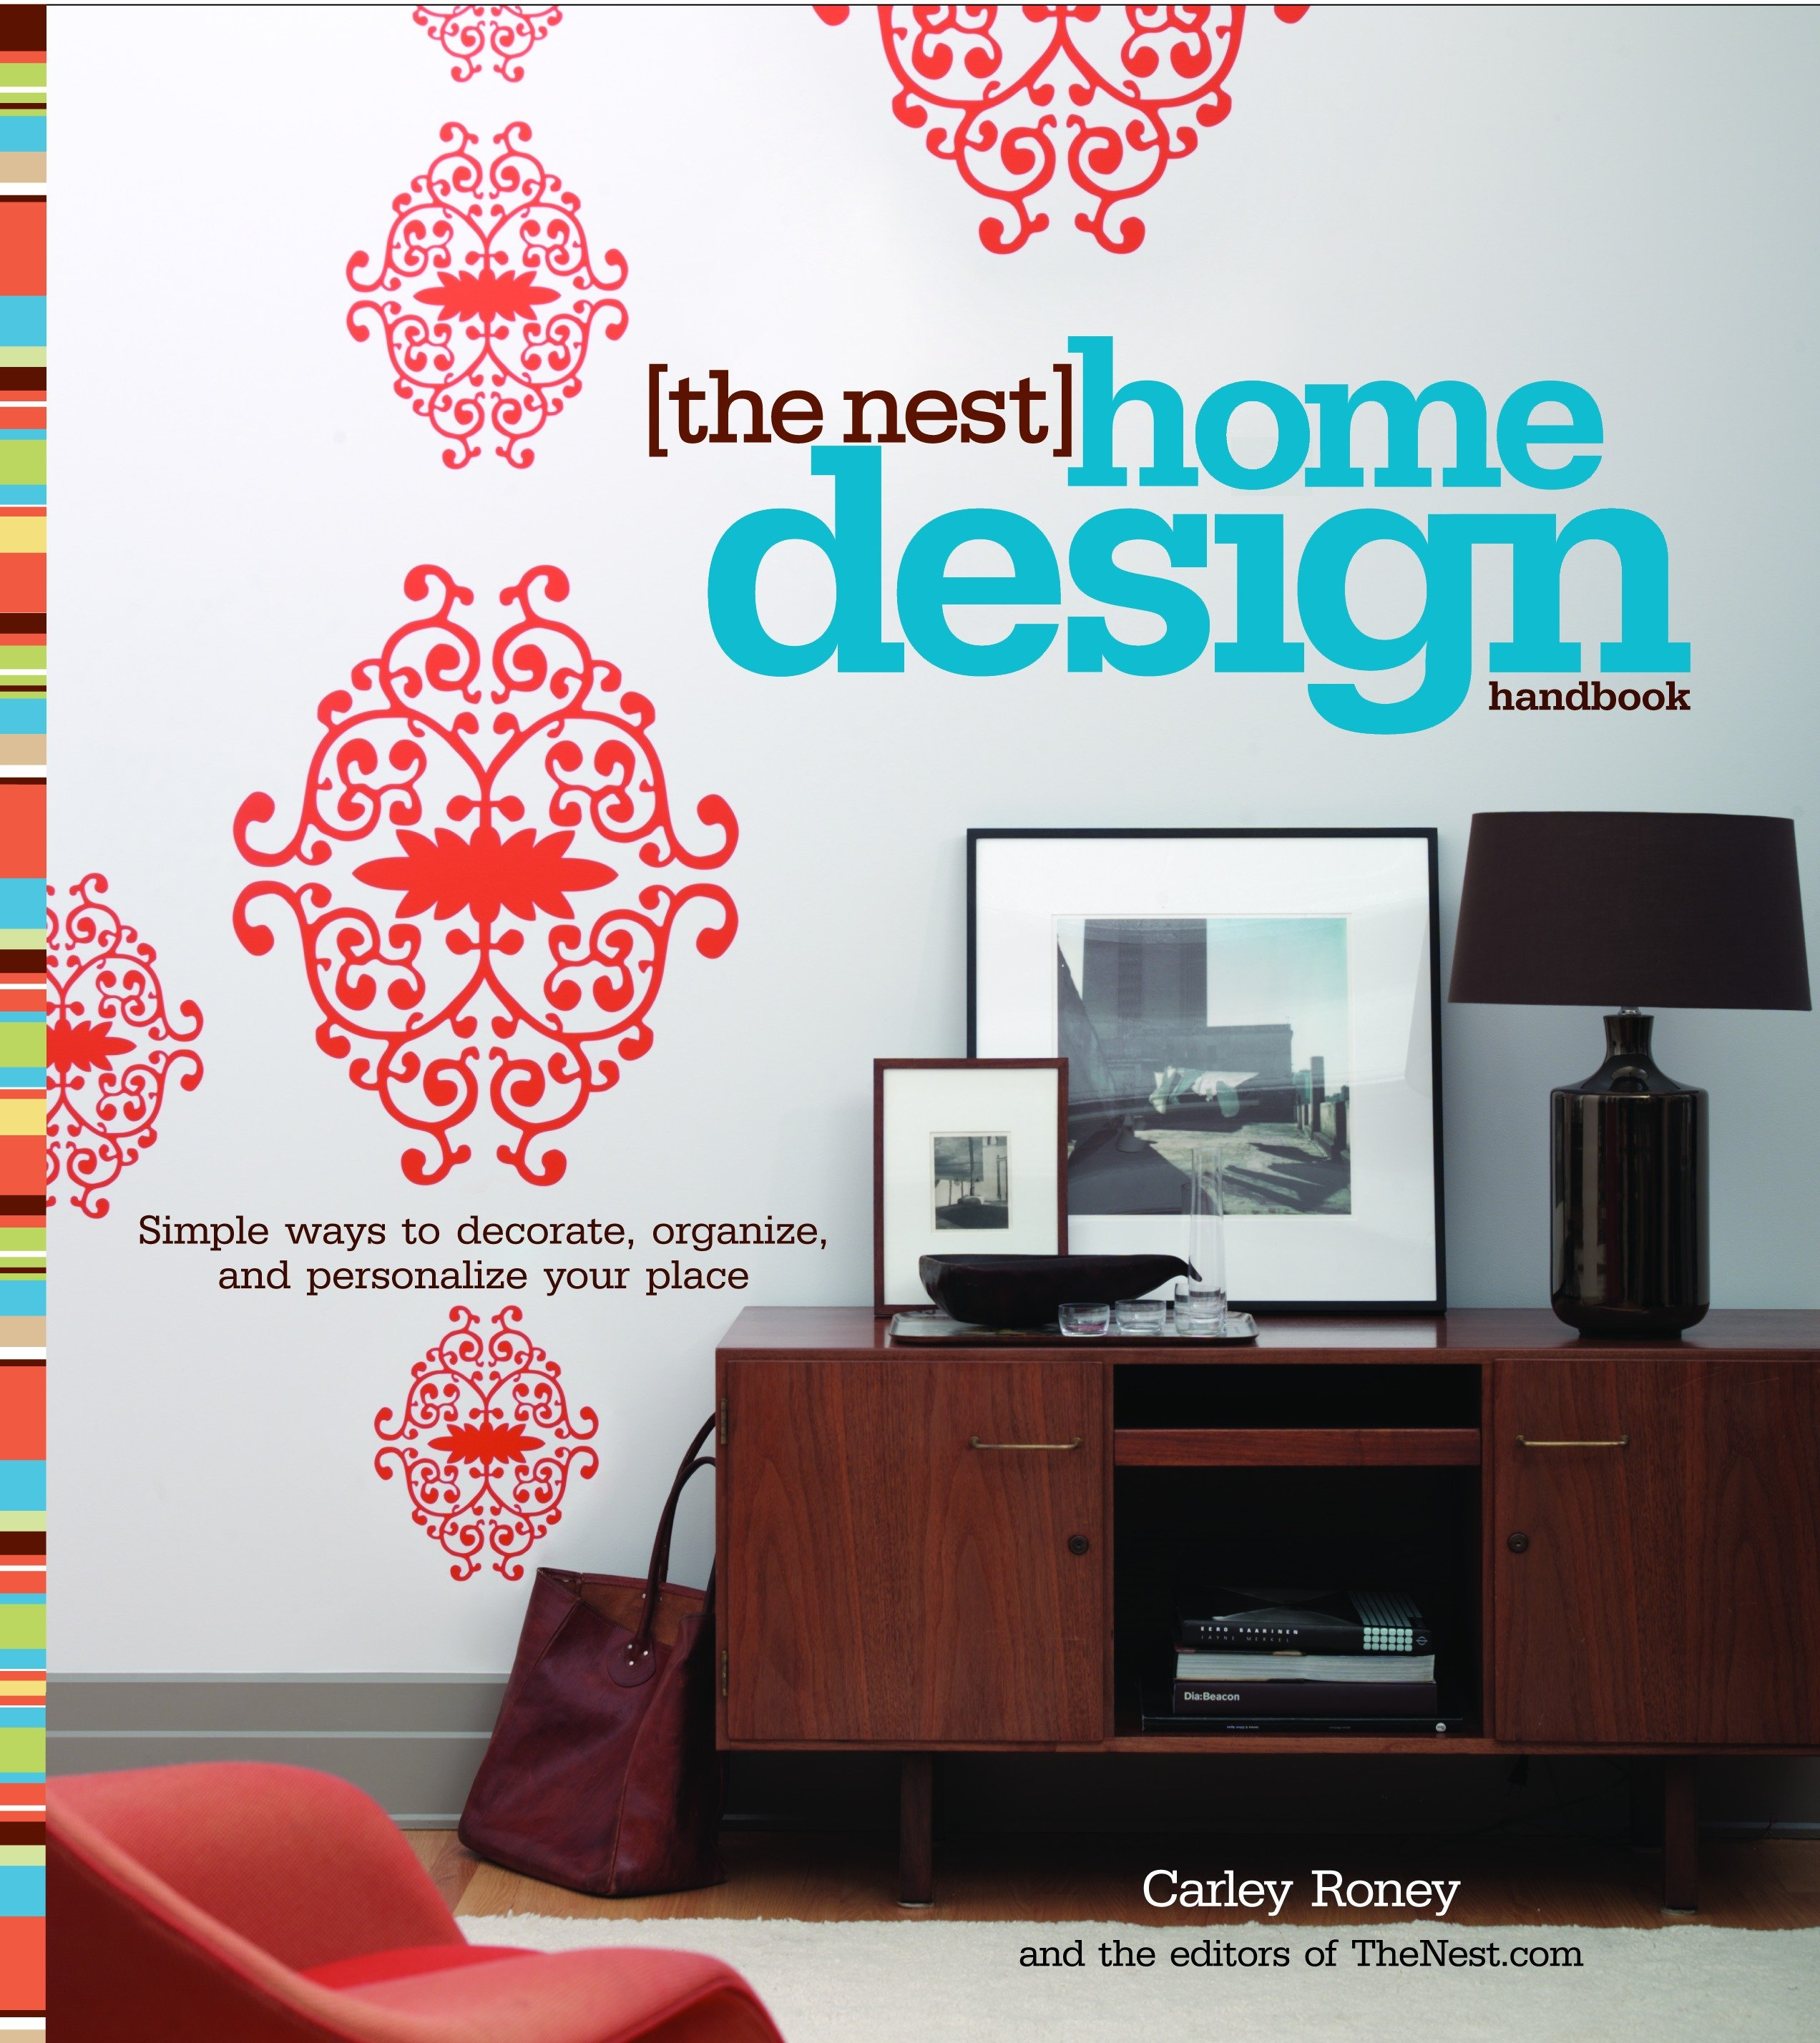 The nest home design handbook simple ways to decorate, organize, and personalize your place cover image